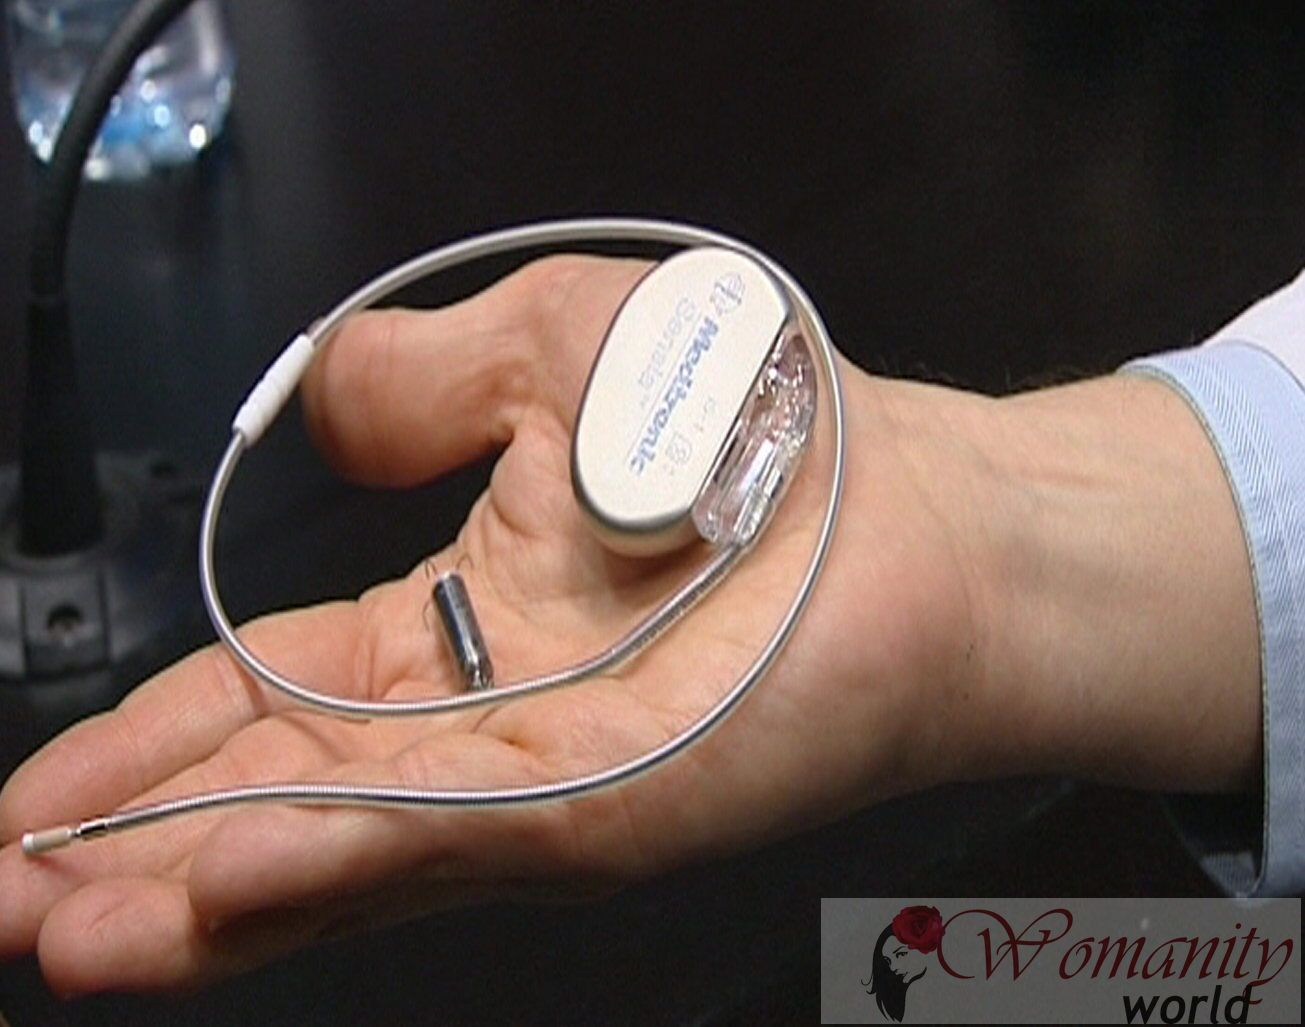 I progressi in cardiologia: verso un pacemaker wireless